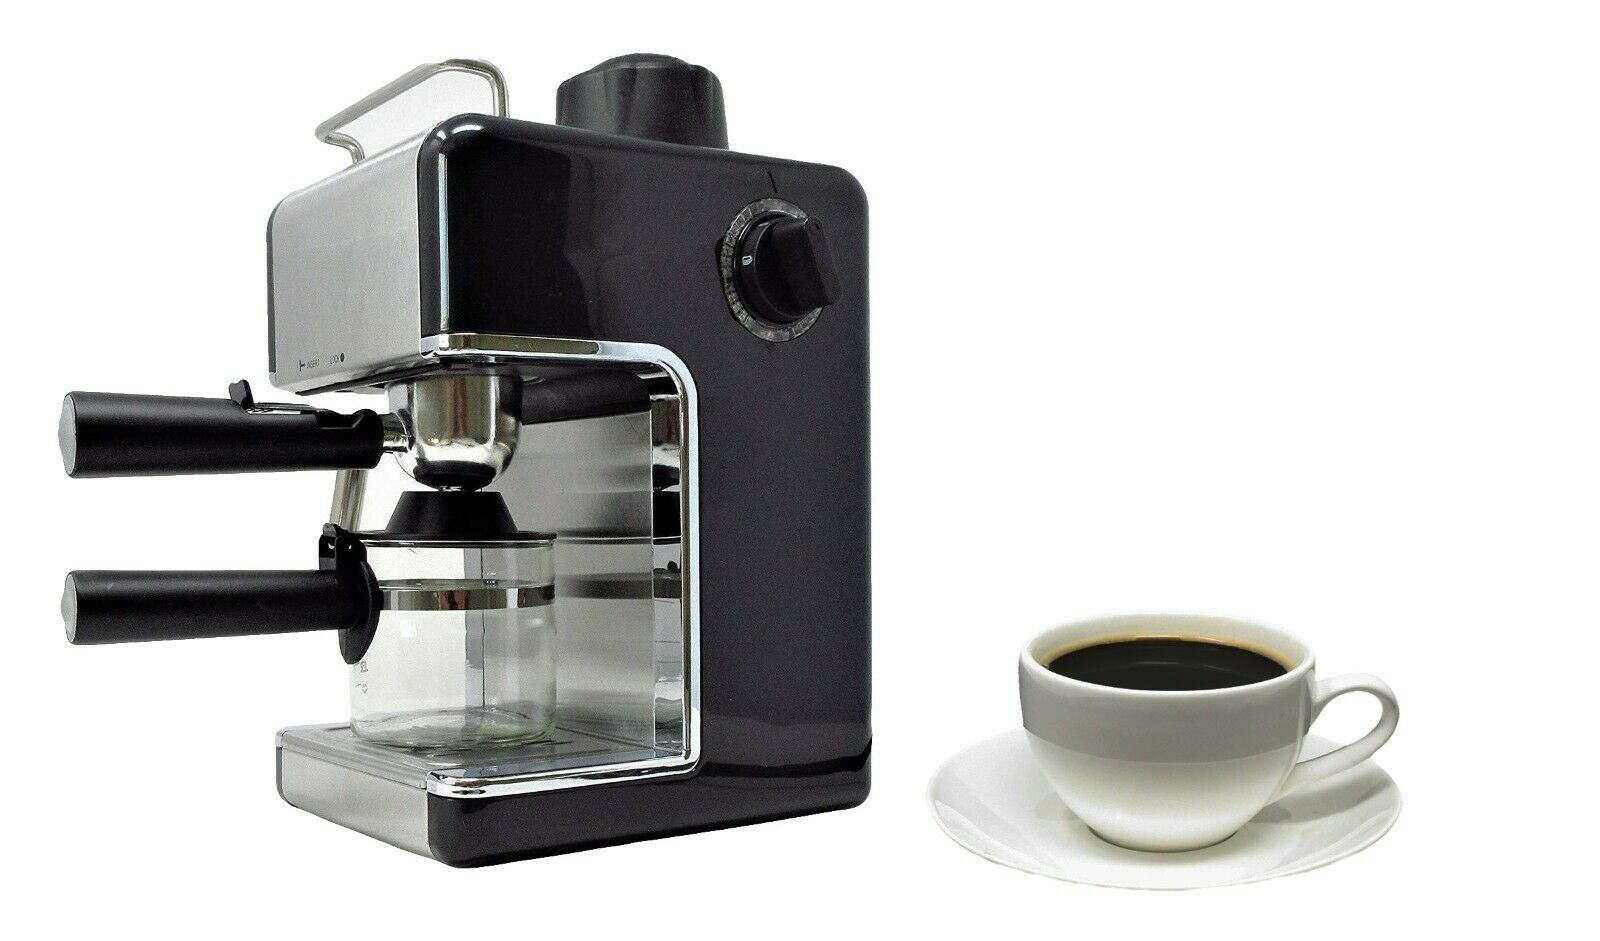 Black Espresso Cappuccino Latte 4 Cup Coffee Machine with Milk Frother Steamer